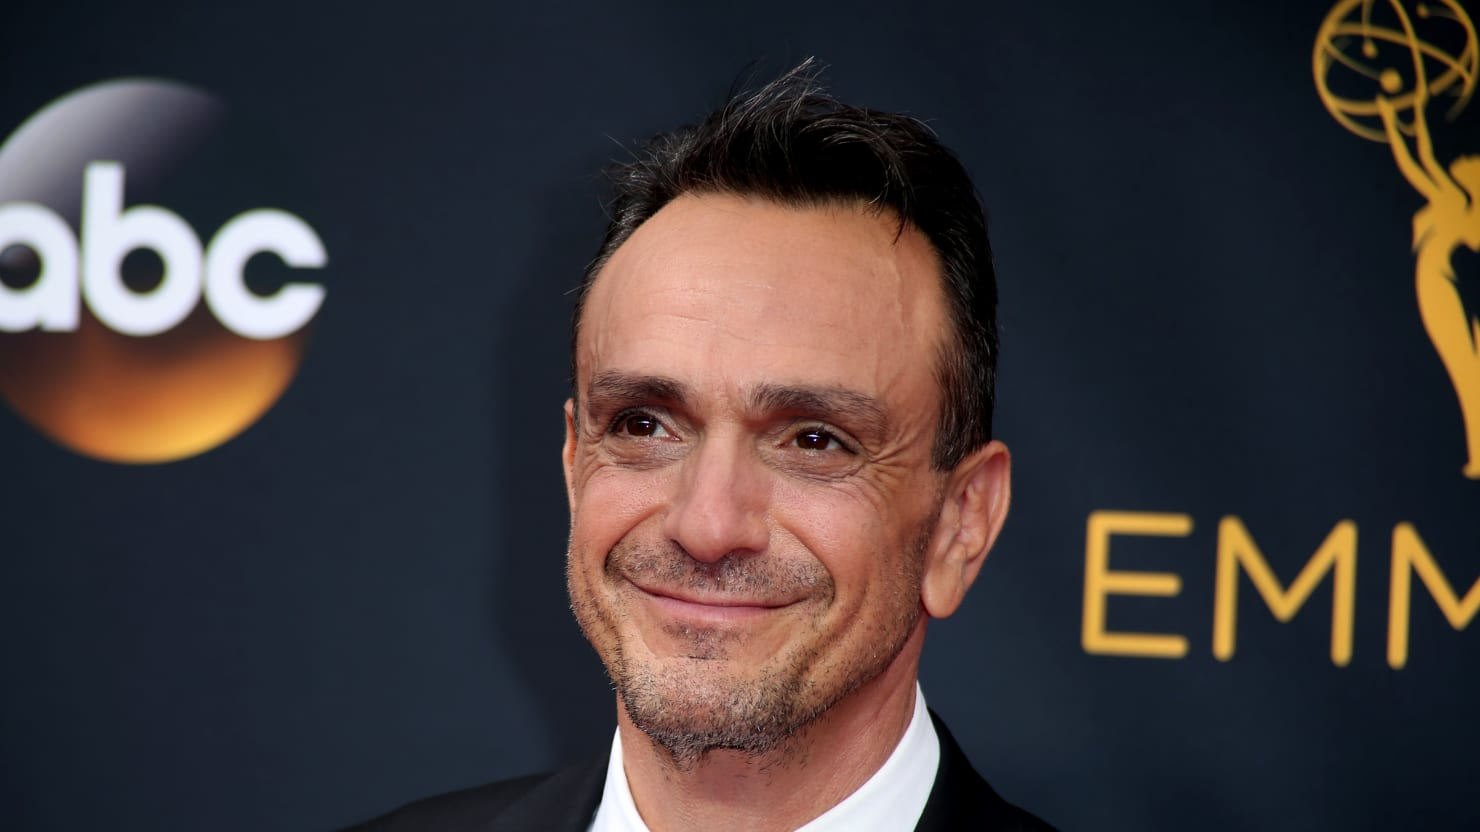 Apu Voice Actor Hank Azaria: I Quit After Educating Myself About Racism